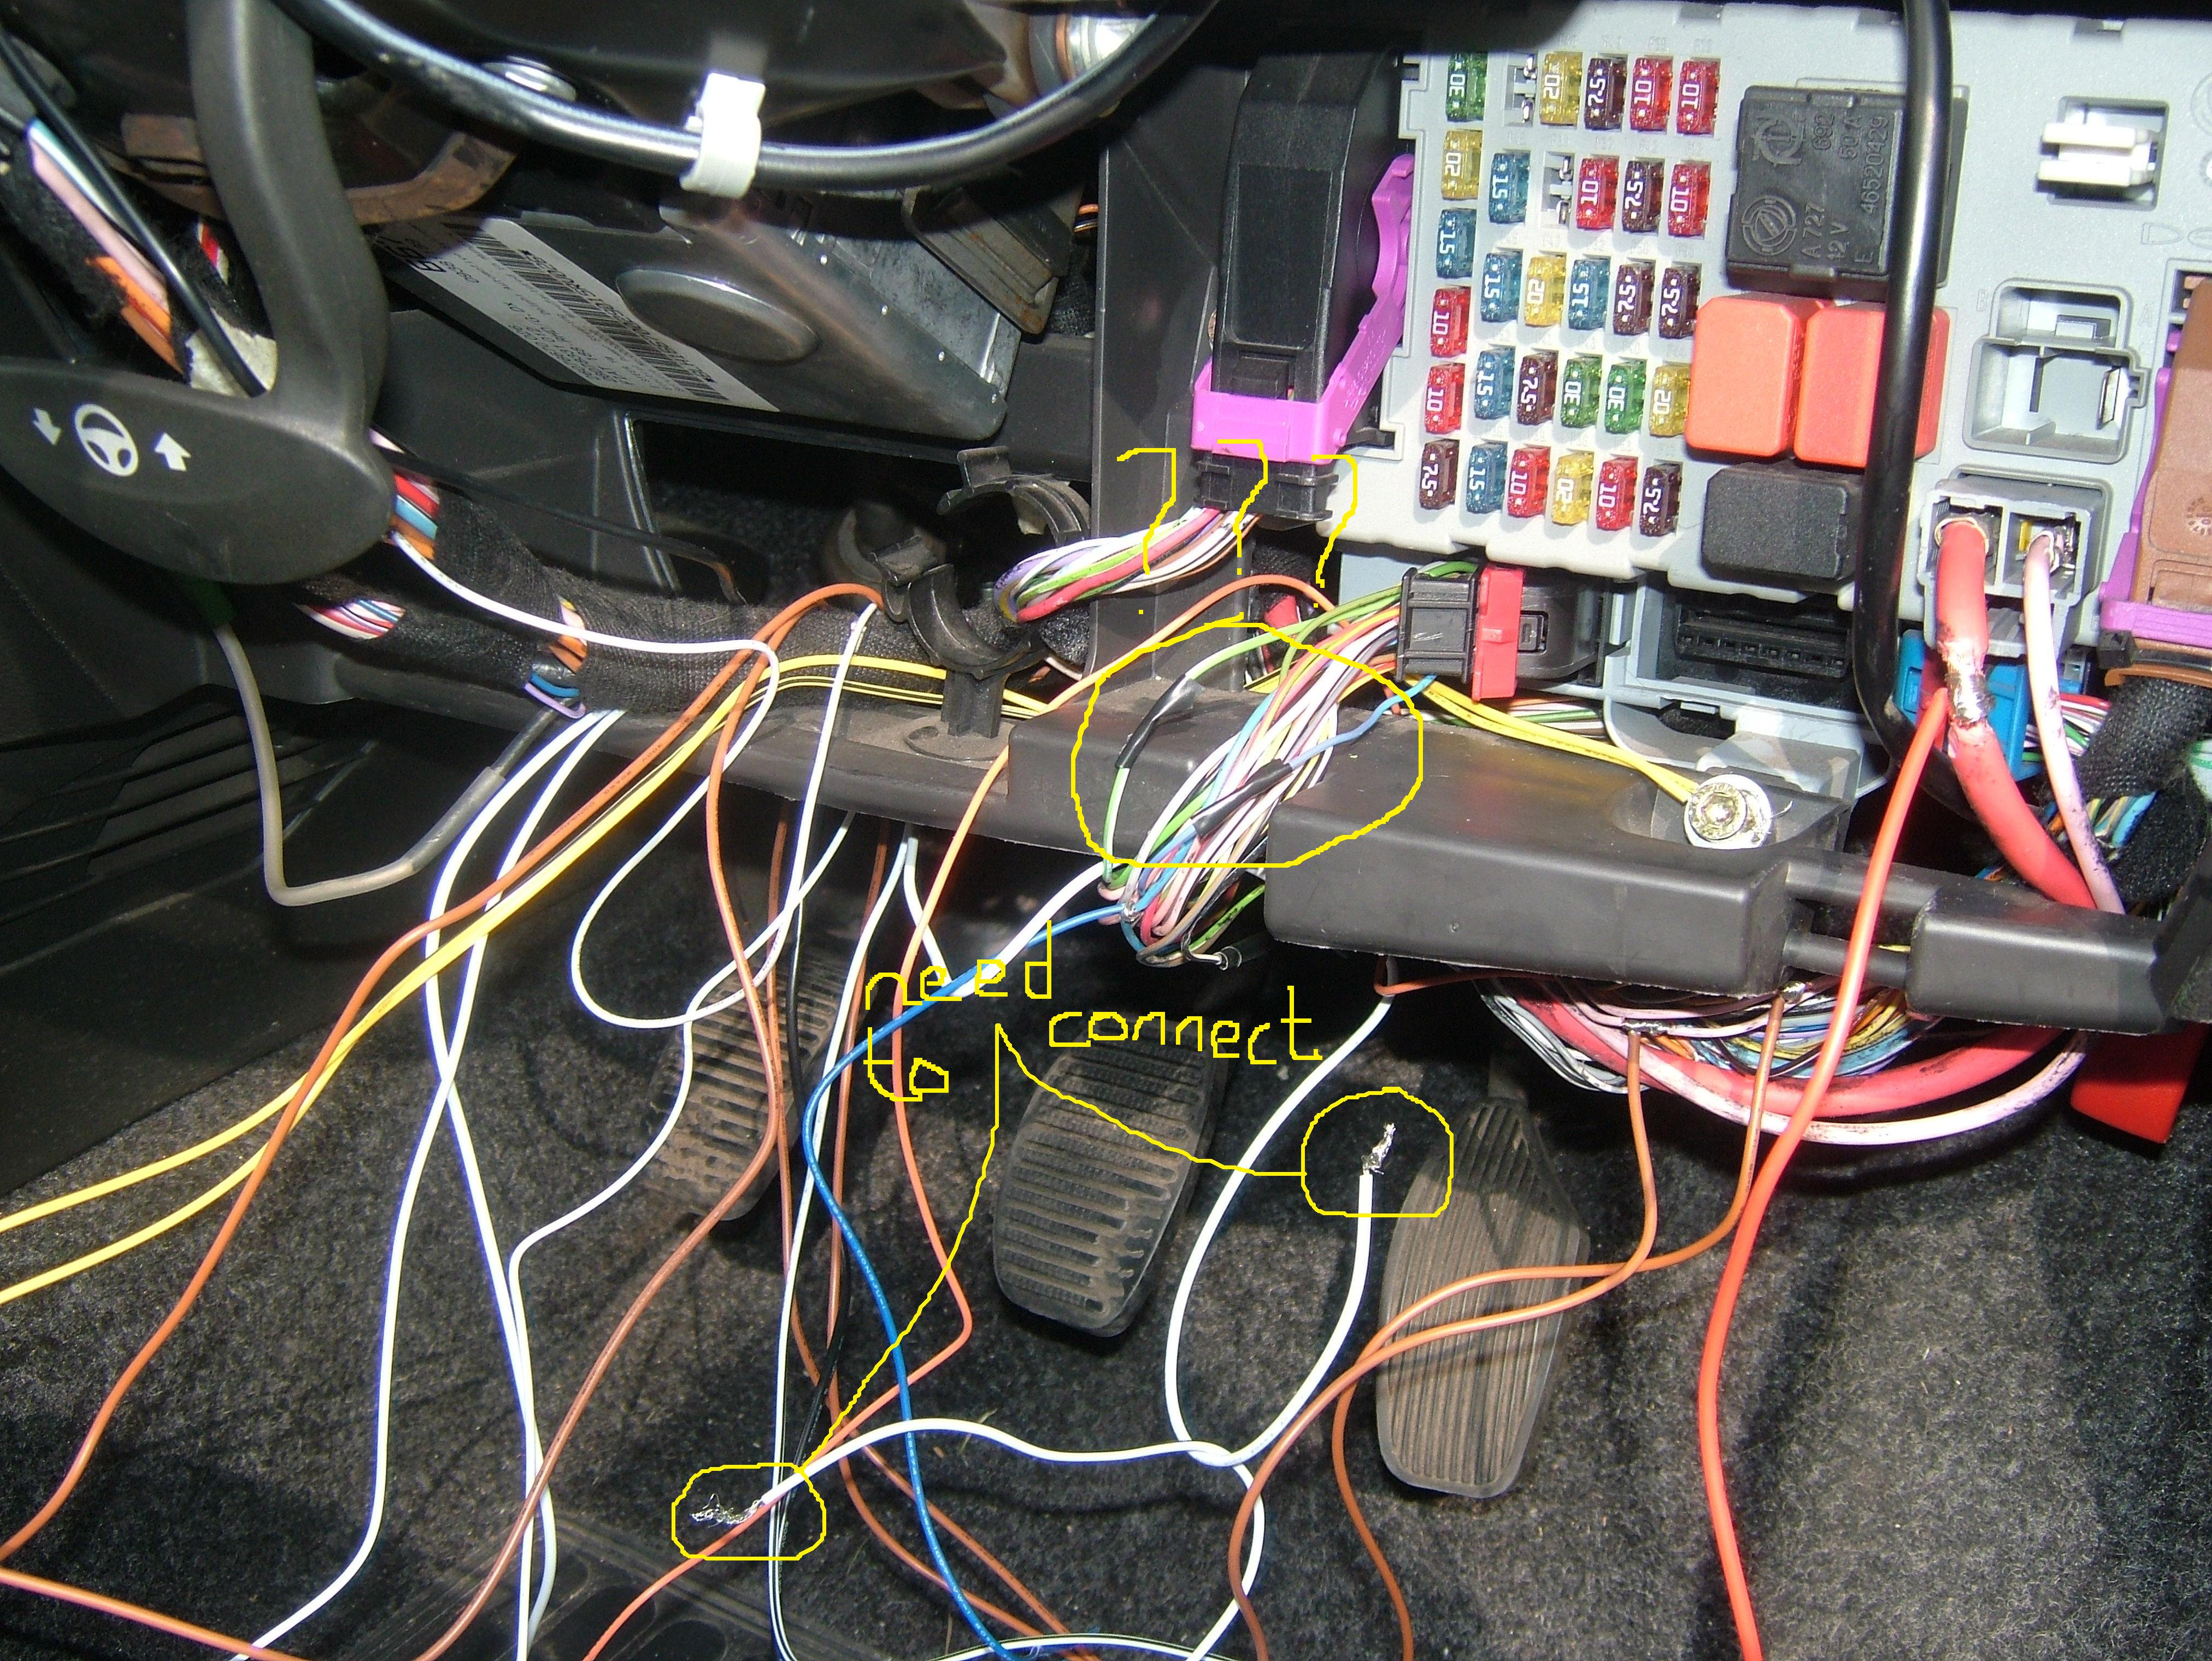 95 Honda Civic 1 6 Vtec Engine Diagram moreover Ford Focus 10 Ecoboost 2012 Review in addition Page 13 further 124113 Suspect Fuel Pump Failure 1999 S 60 A likewise Car Pre Fuse Box. on fiat 500 fuse box location